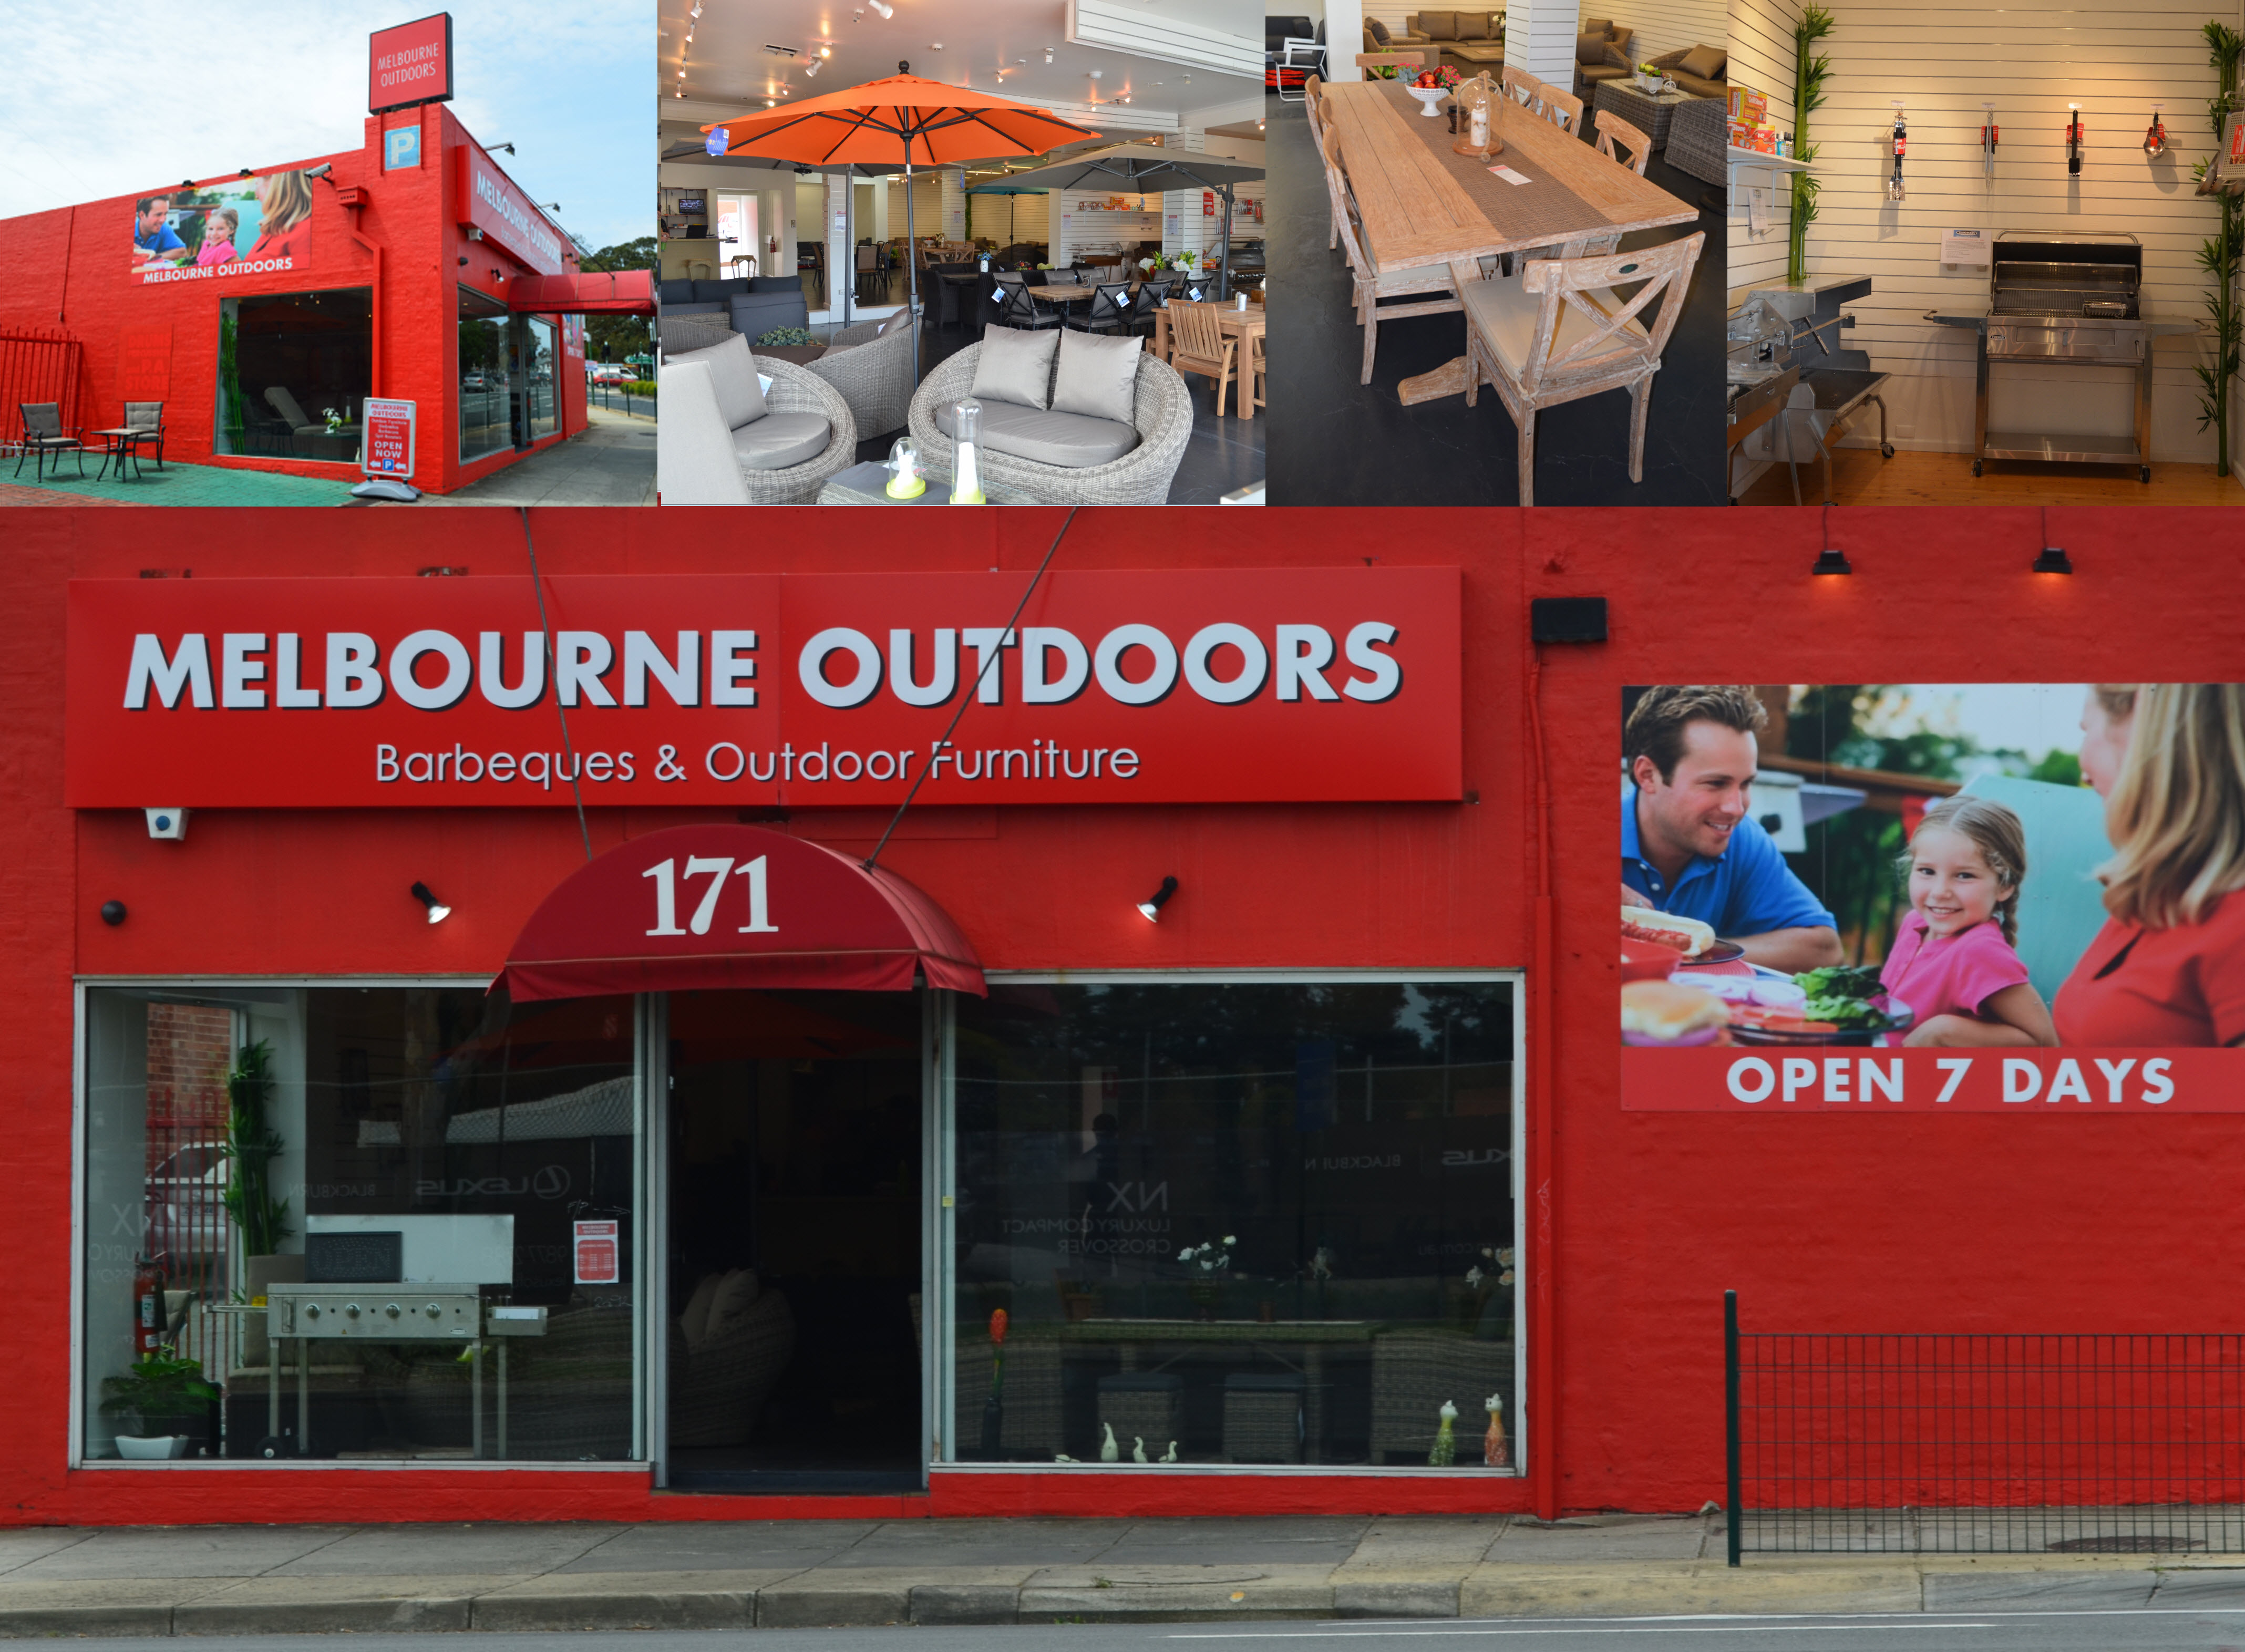 Melbourne outdoor furniture specialists